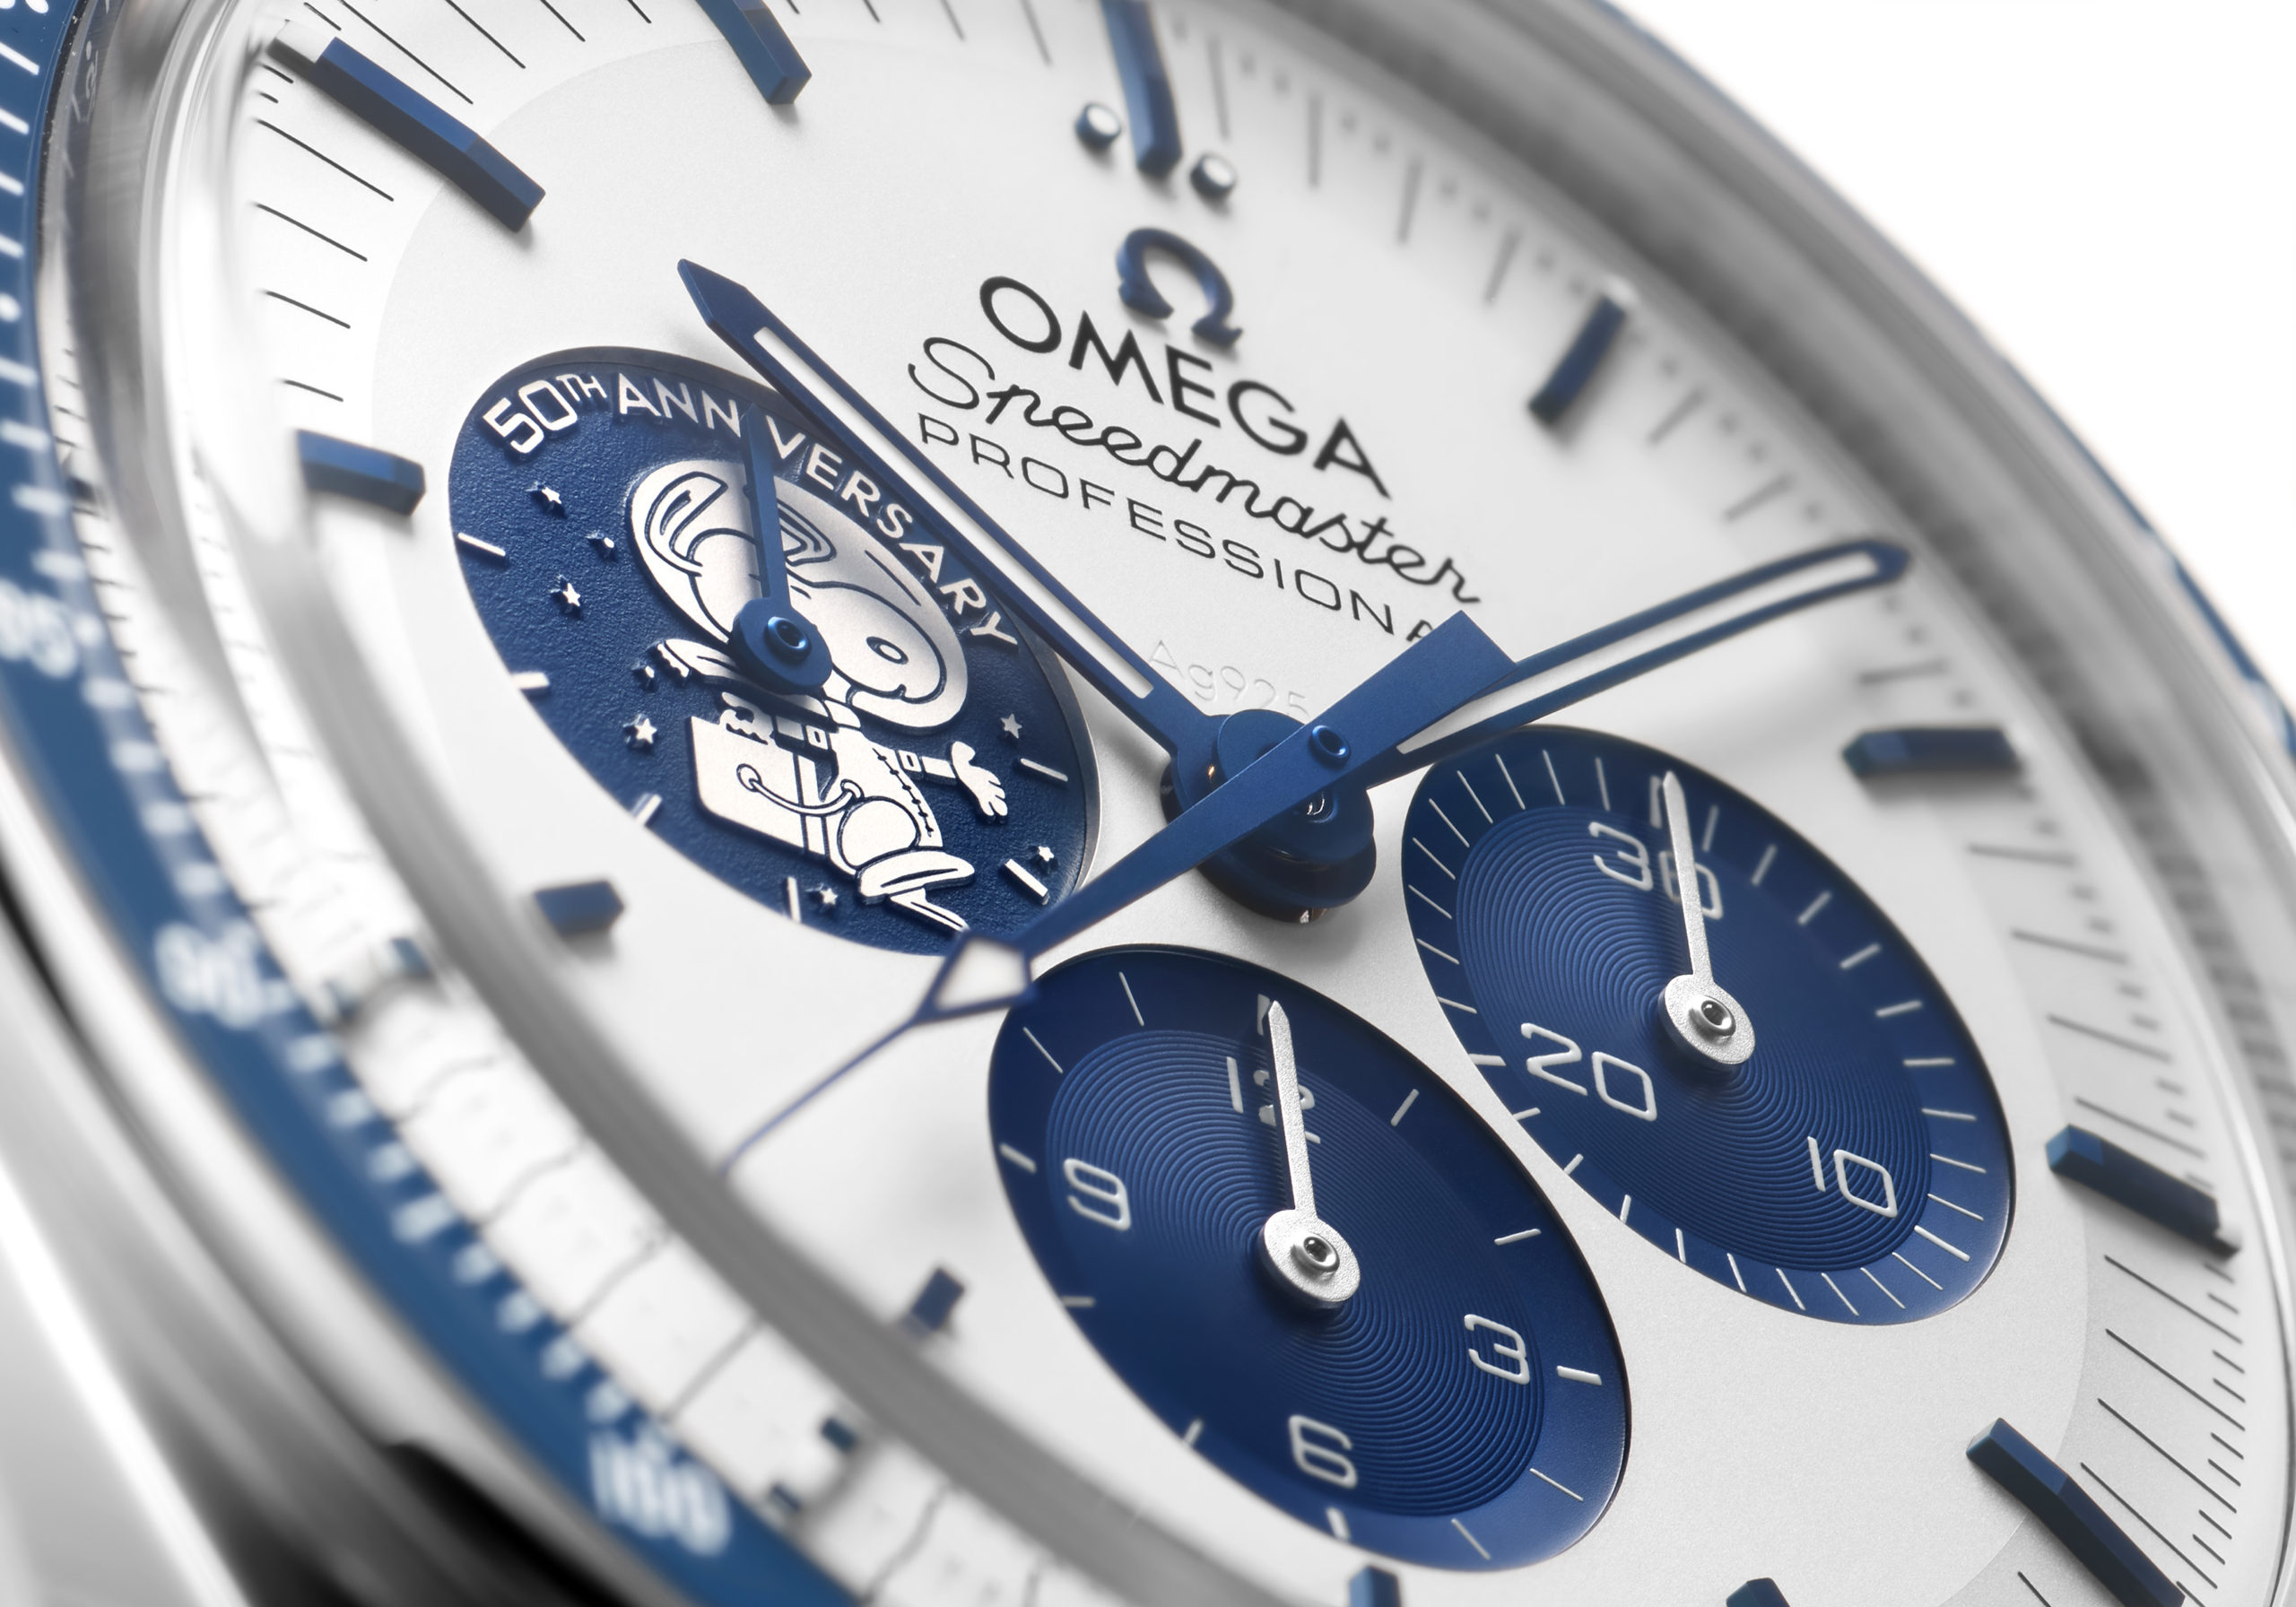 Snoopy takes takes center stage on the new watch as an embossed silver medallion on the blue subdial at 9 o'clock